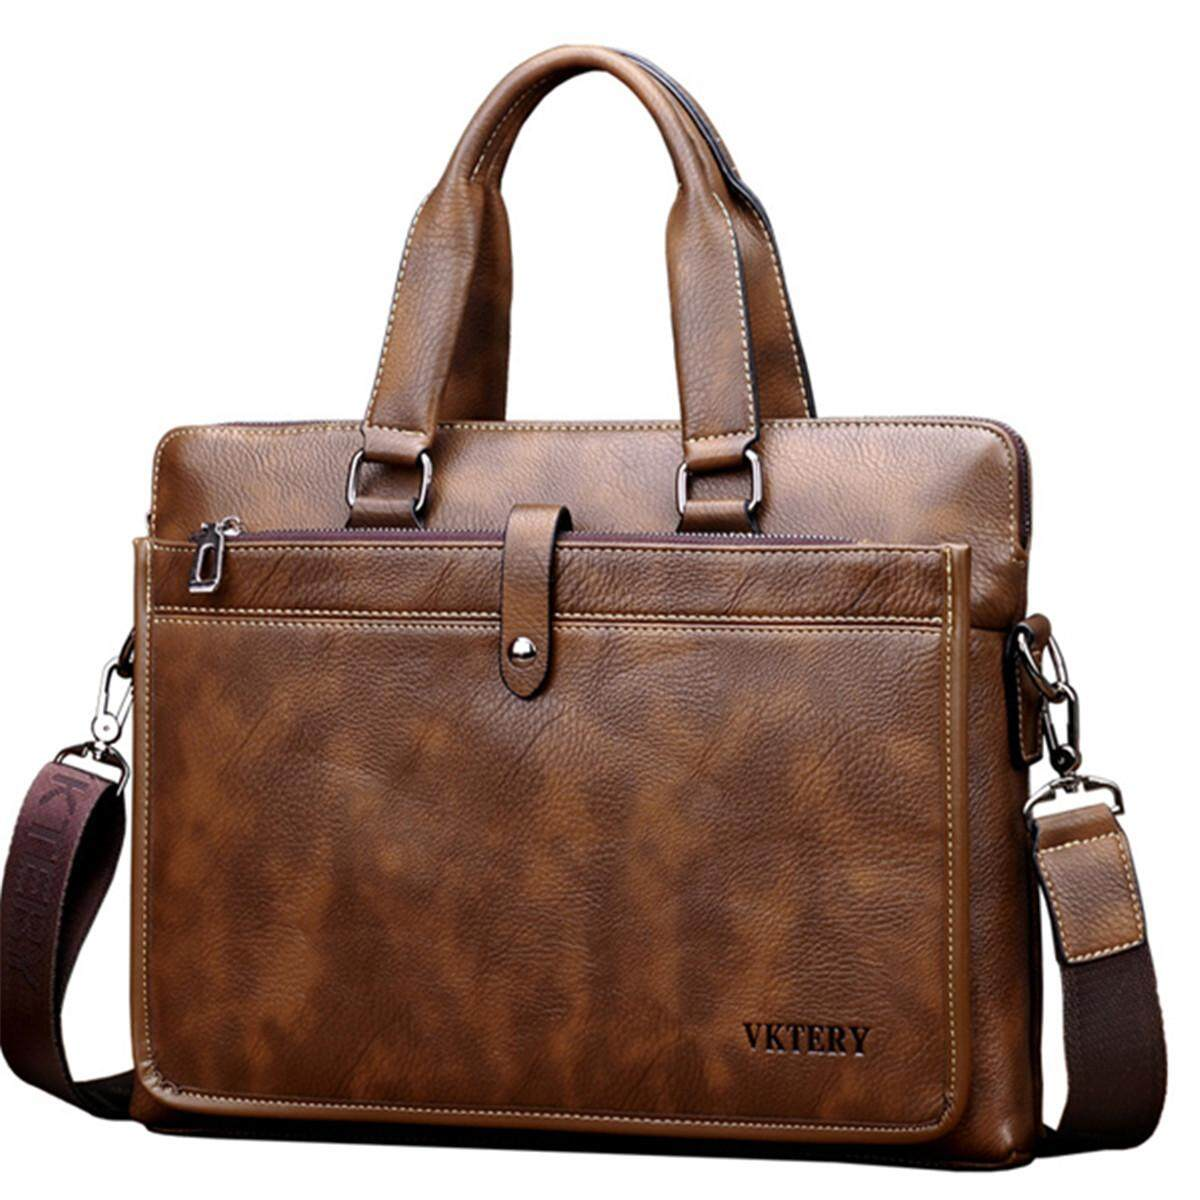 New Vintage Leather Business Laptop Bag Handbag Corssbody Bag For Men Male - intl Philippines